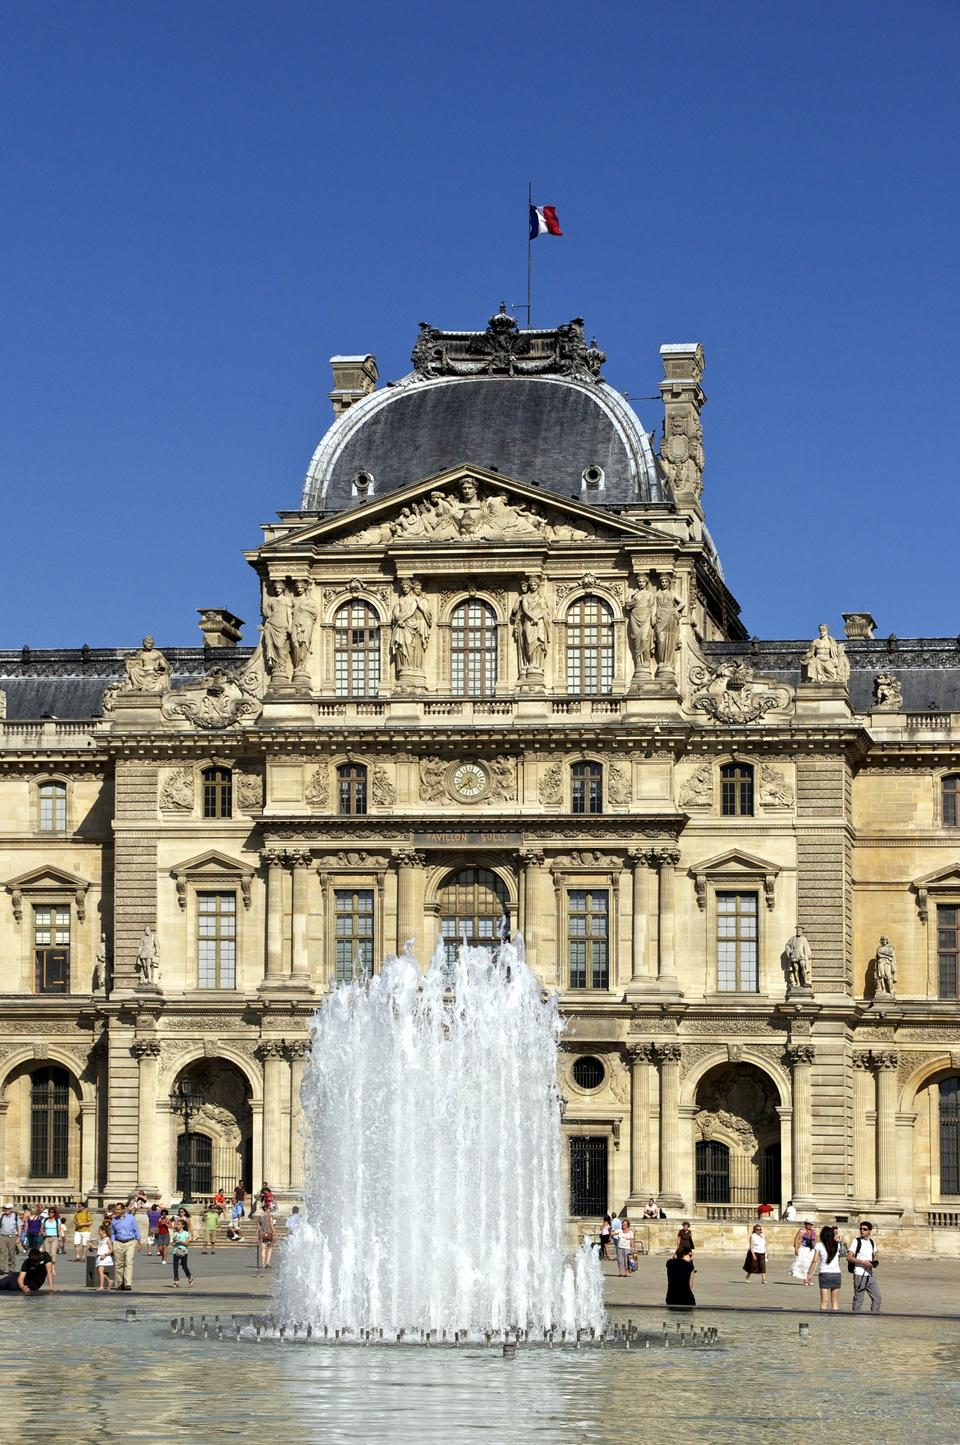 Free Photos: Louvre Museum in Paris | eurosnap